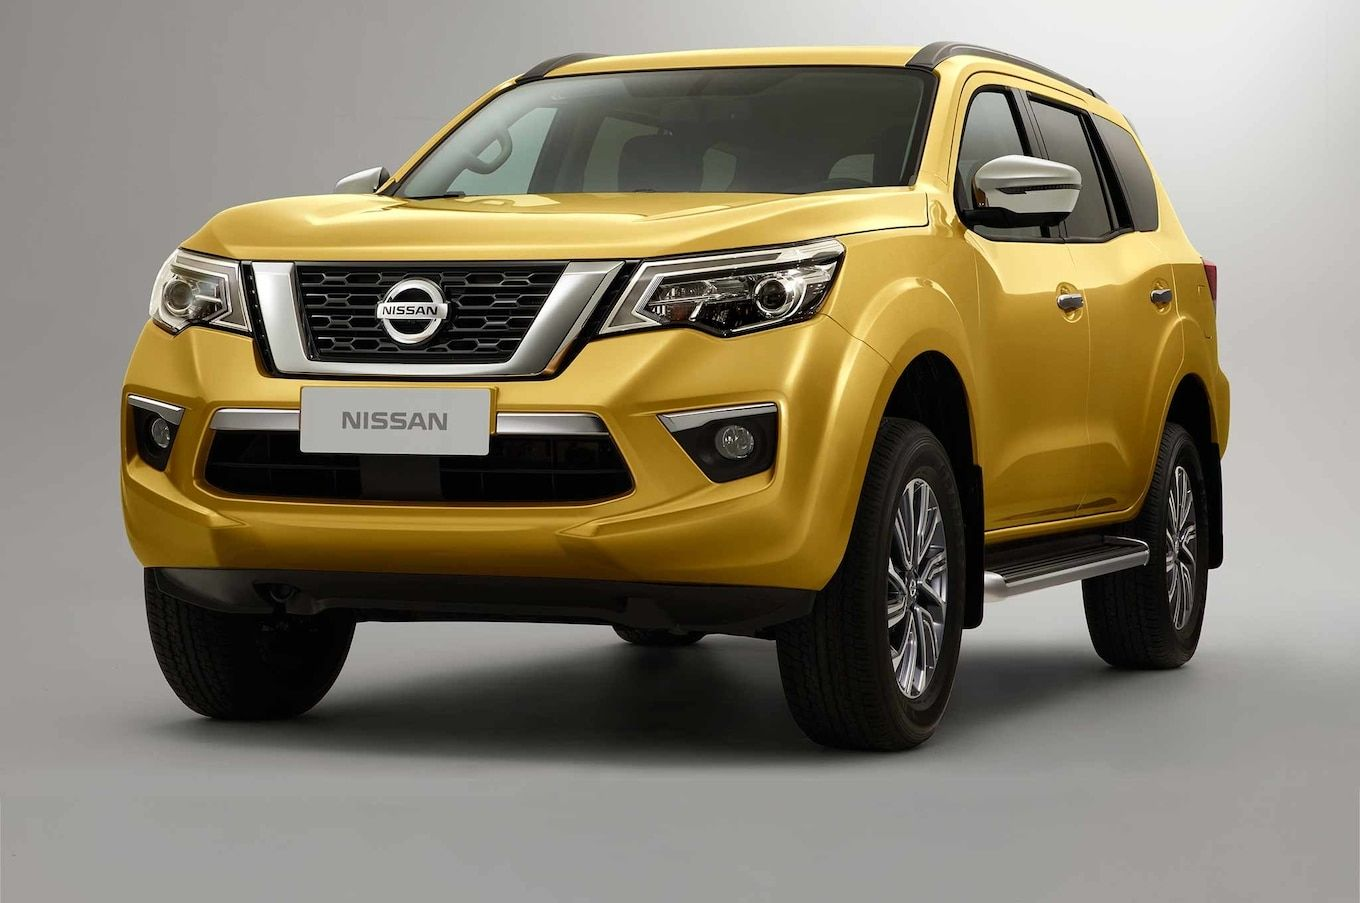 2021 Nissan Xterra Comeback With The Same Platform As The Navara